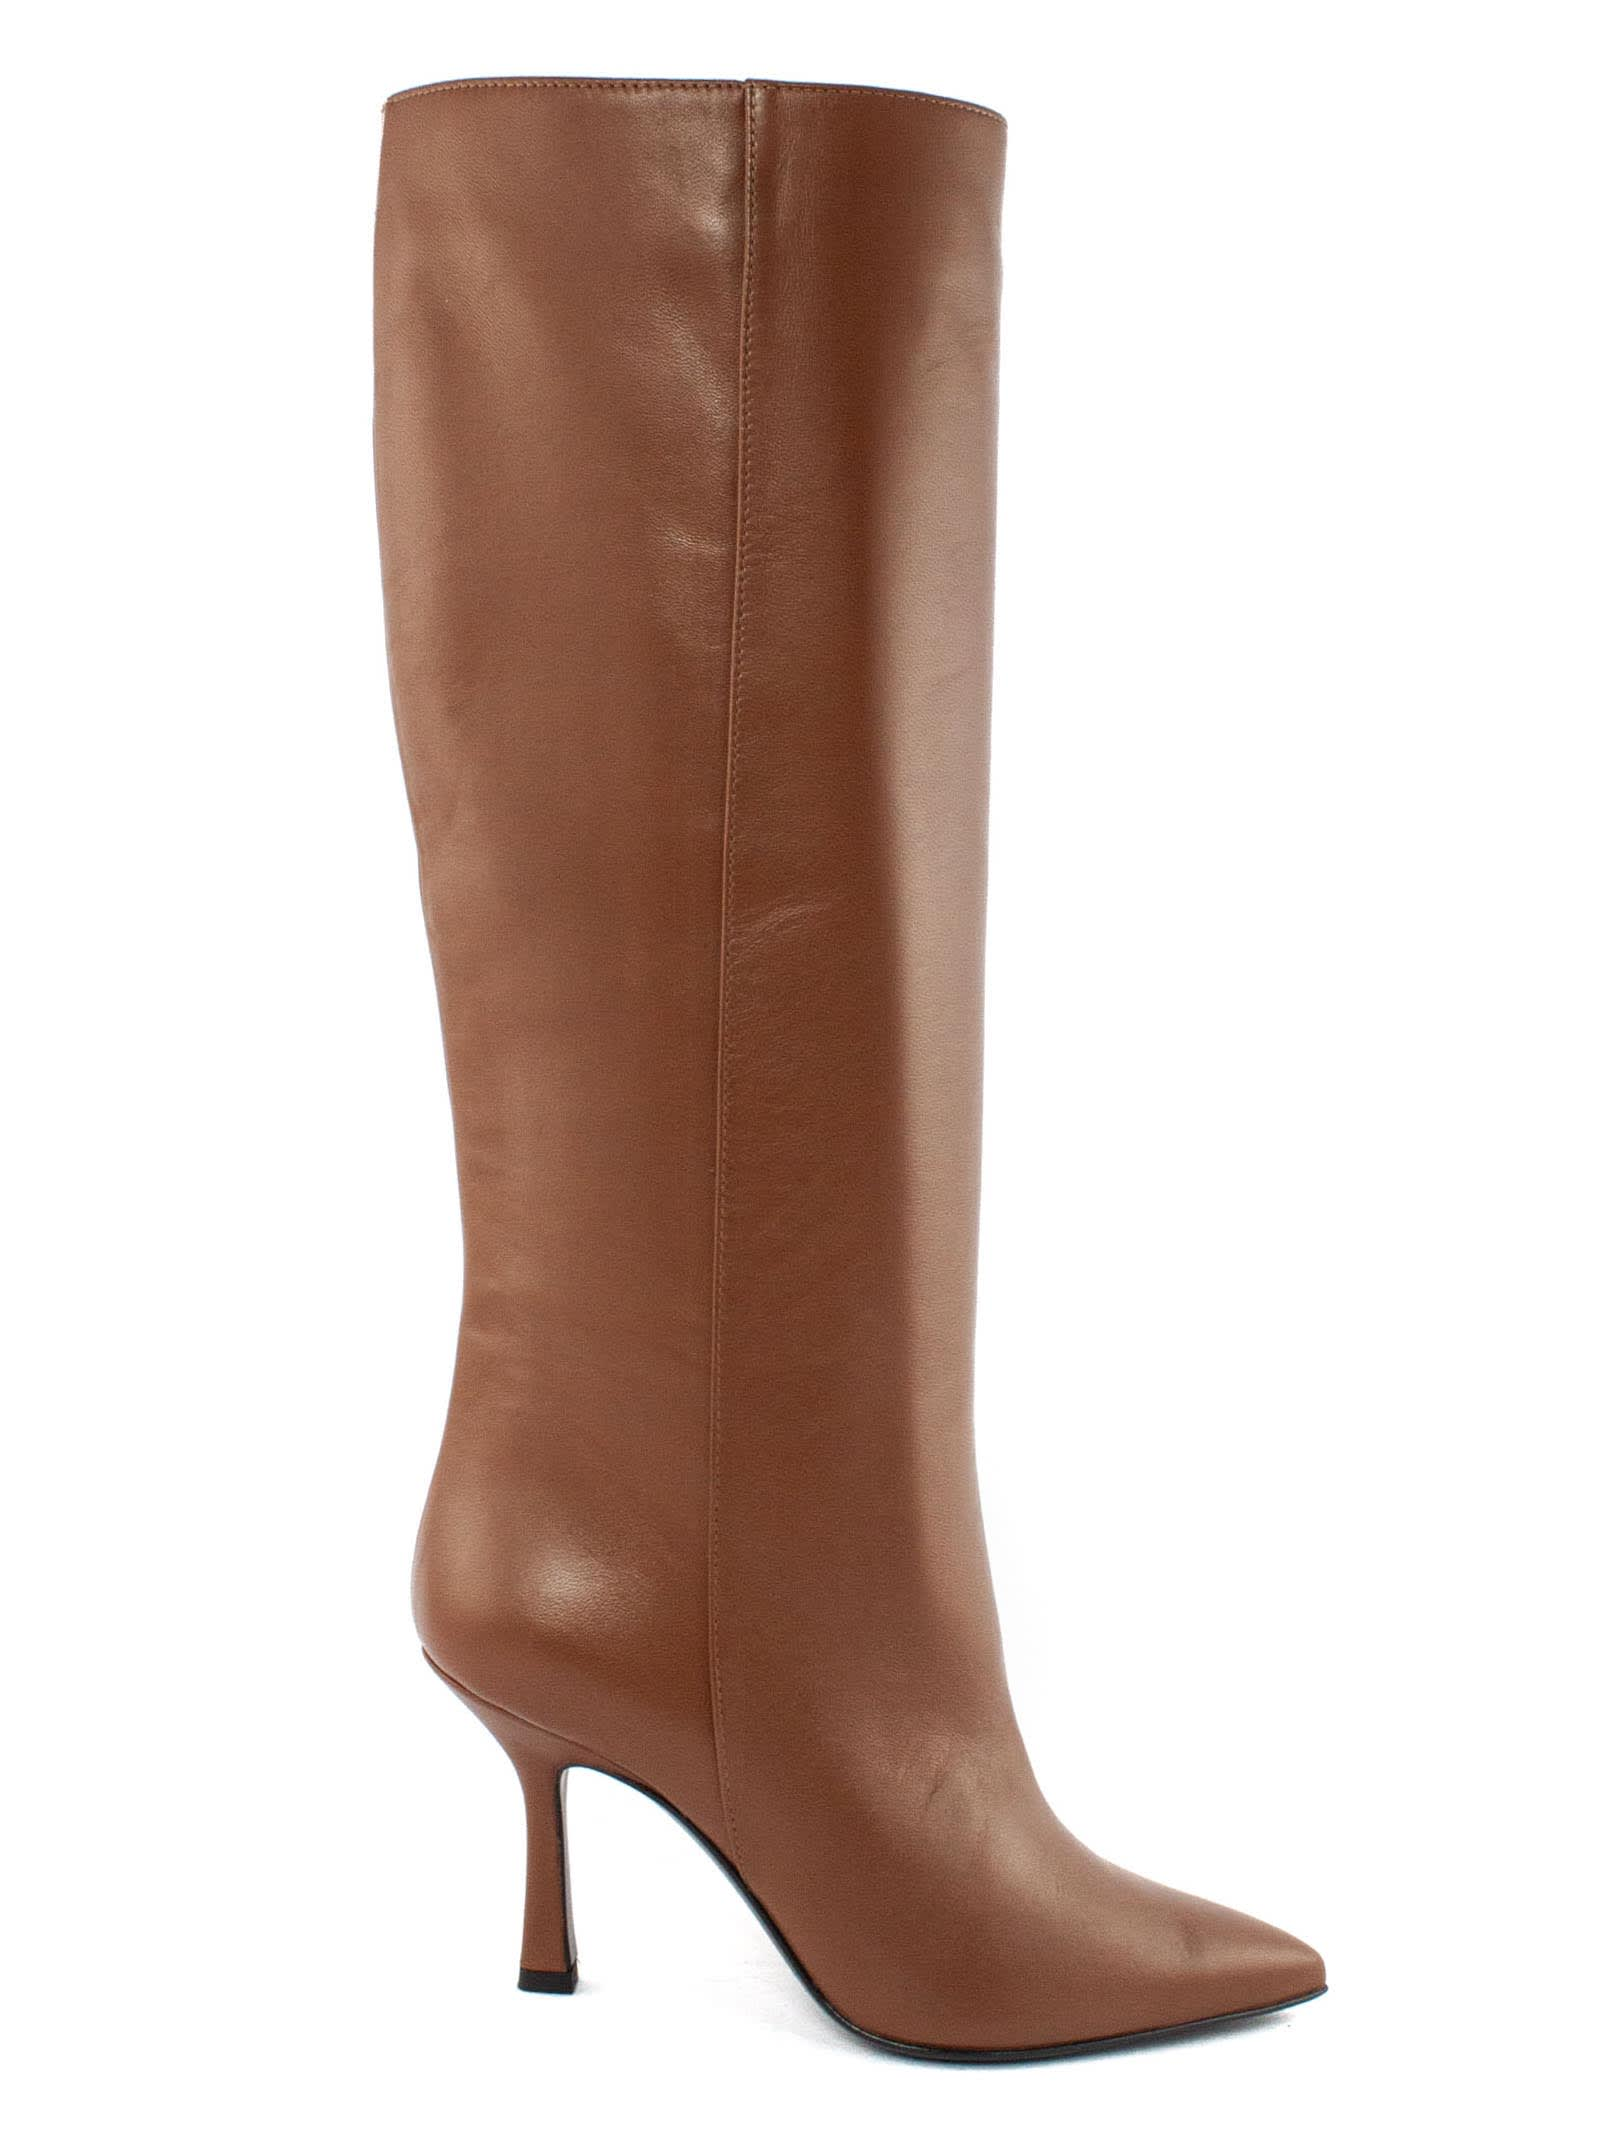 Paola High Boot In Brown Leather